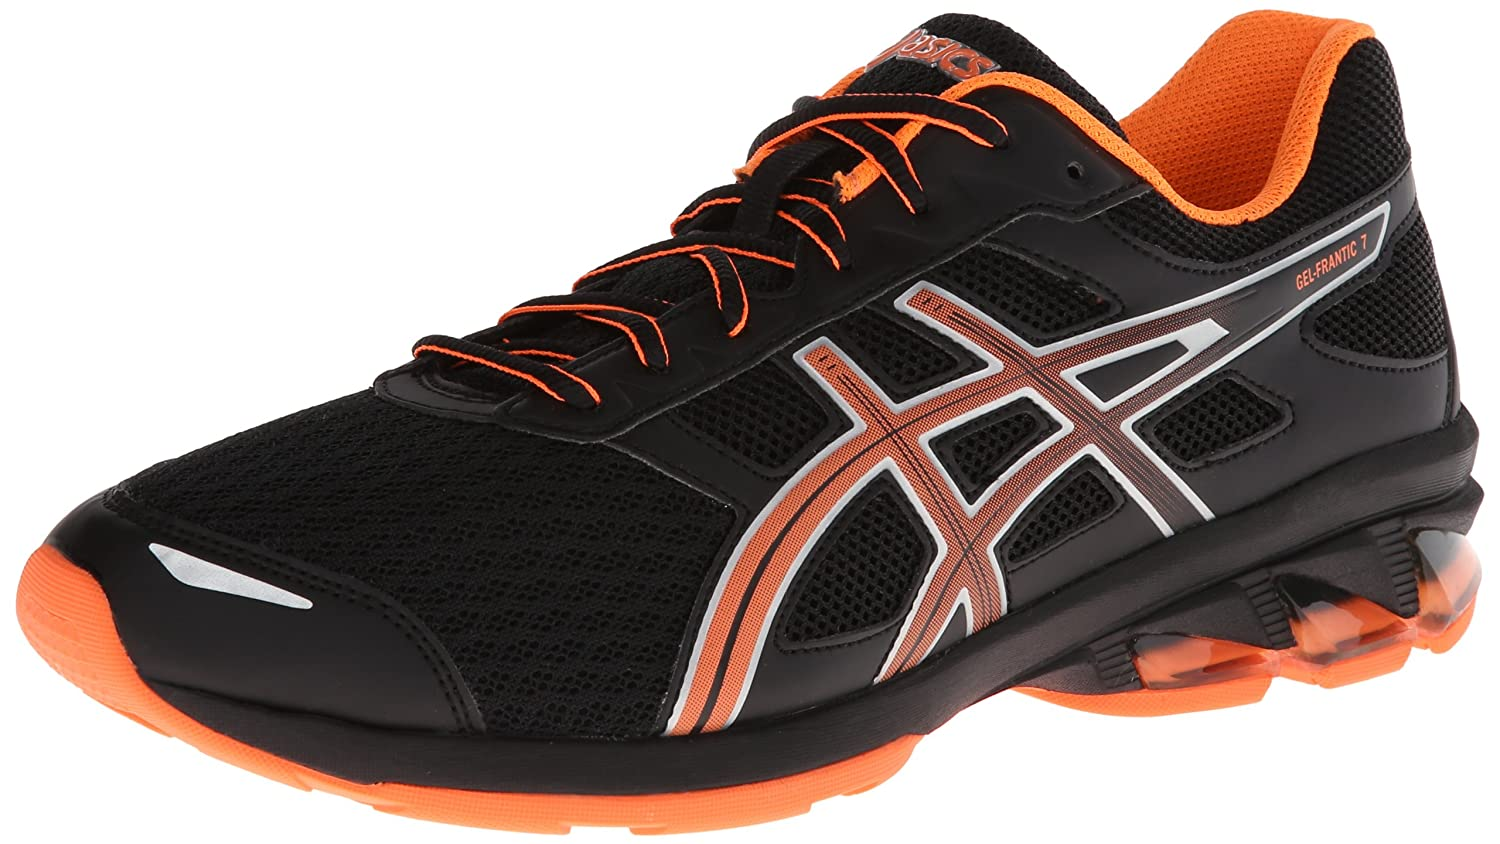 cd317c7dadc Amazon.com | ASICS Men's Gel-Frantic 7 Running Shoe, Black/Electric  Orange/Silver, 12.5 M US | Road Running